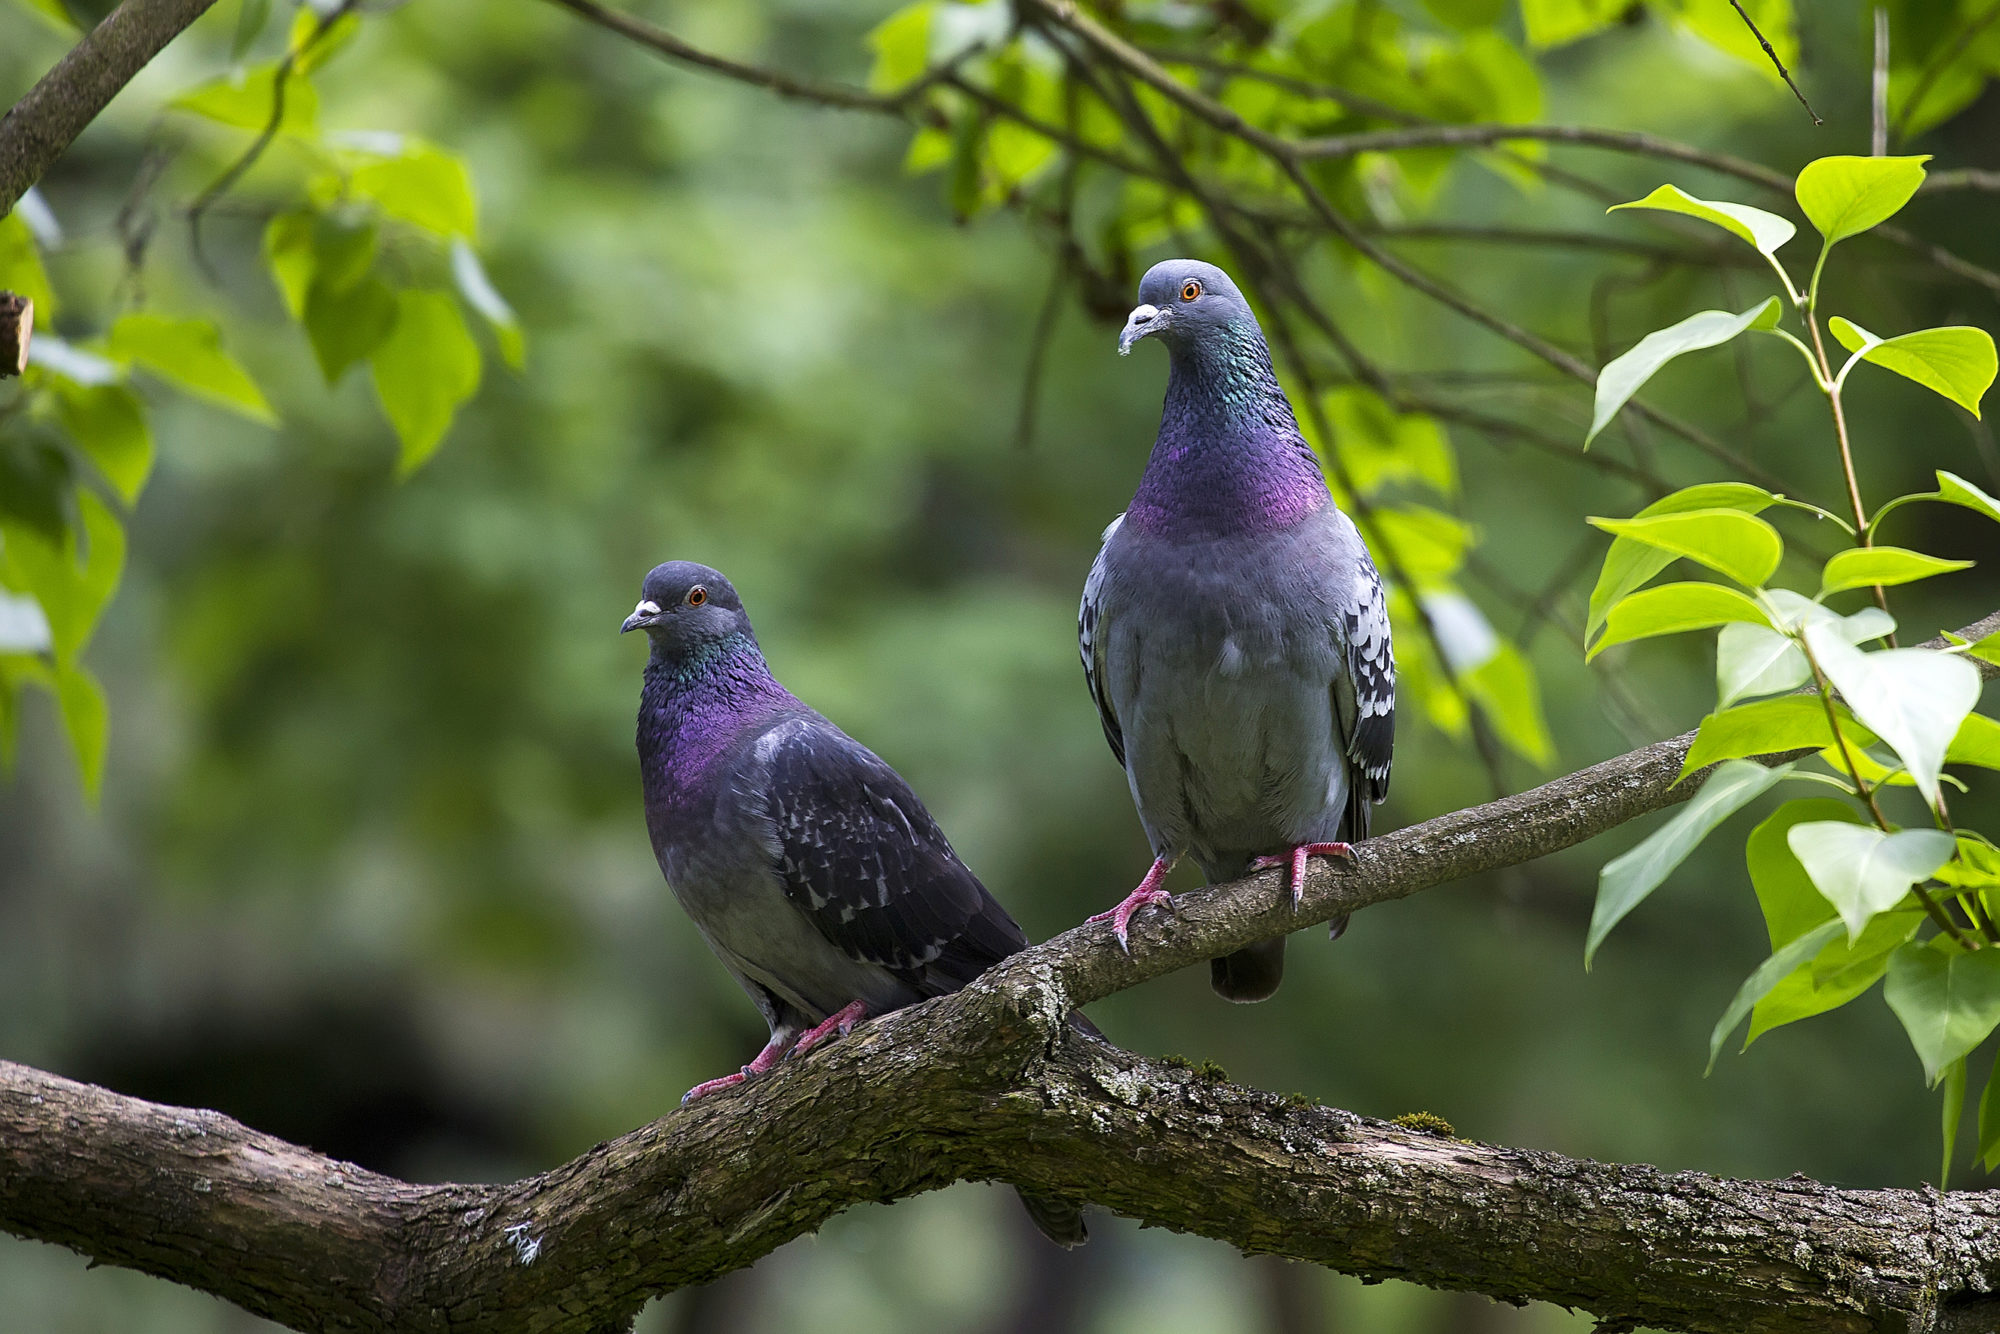 pigeons-in-the-forest-P43FHM3